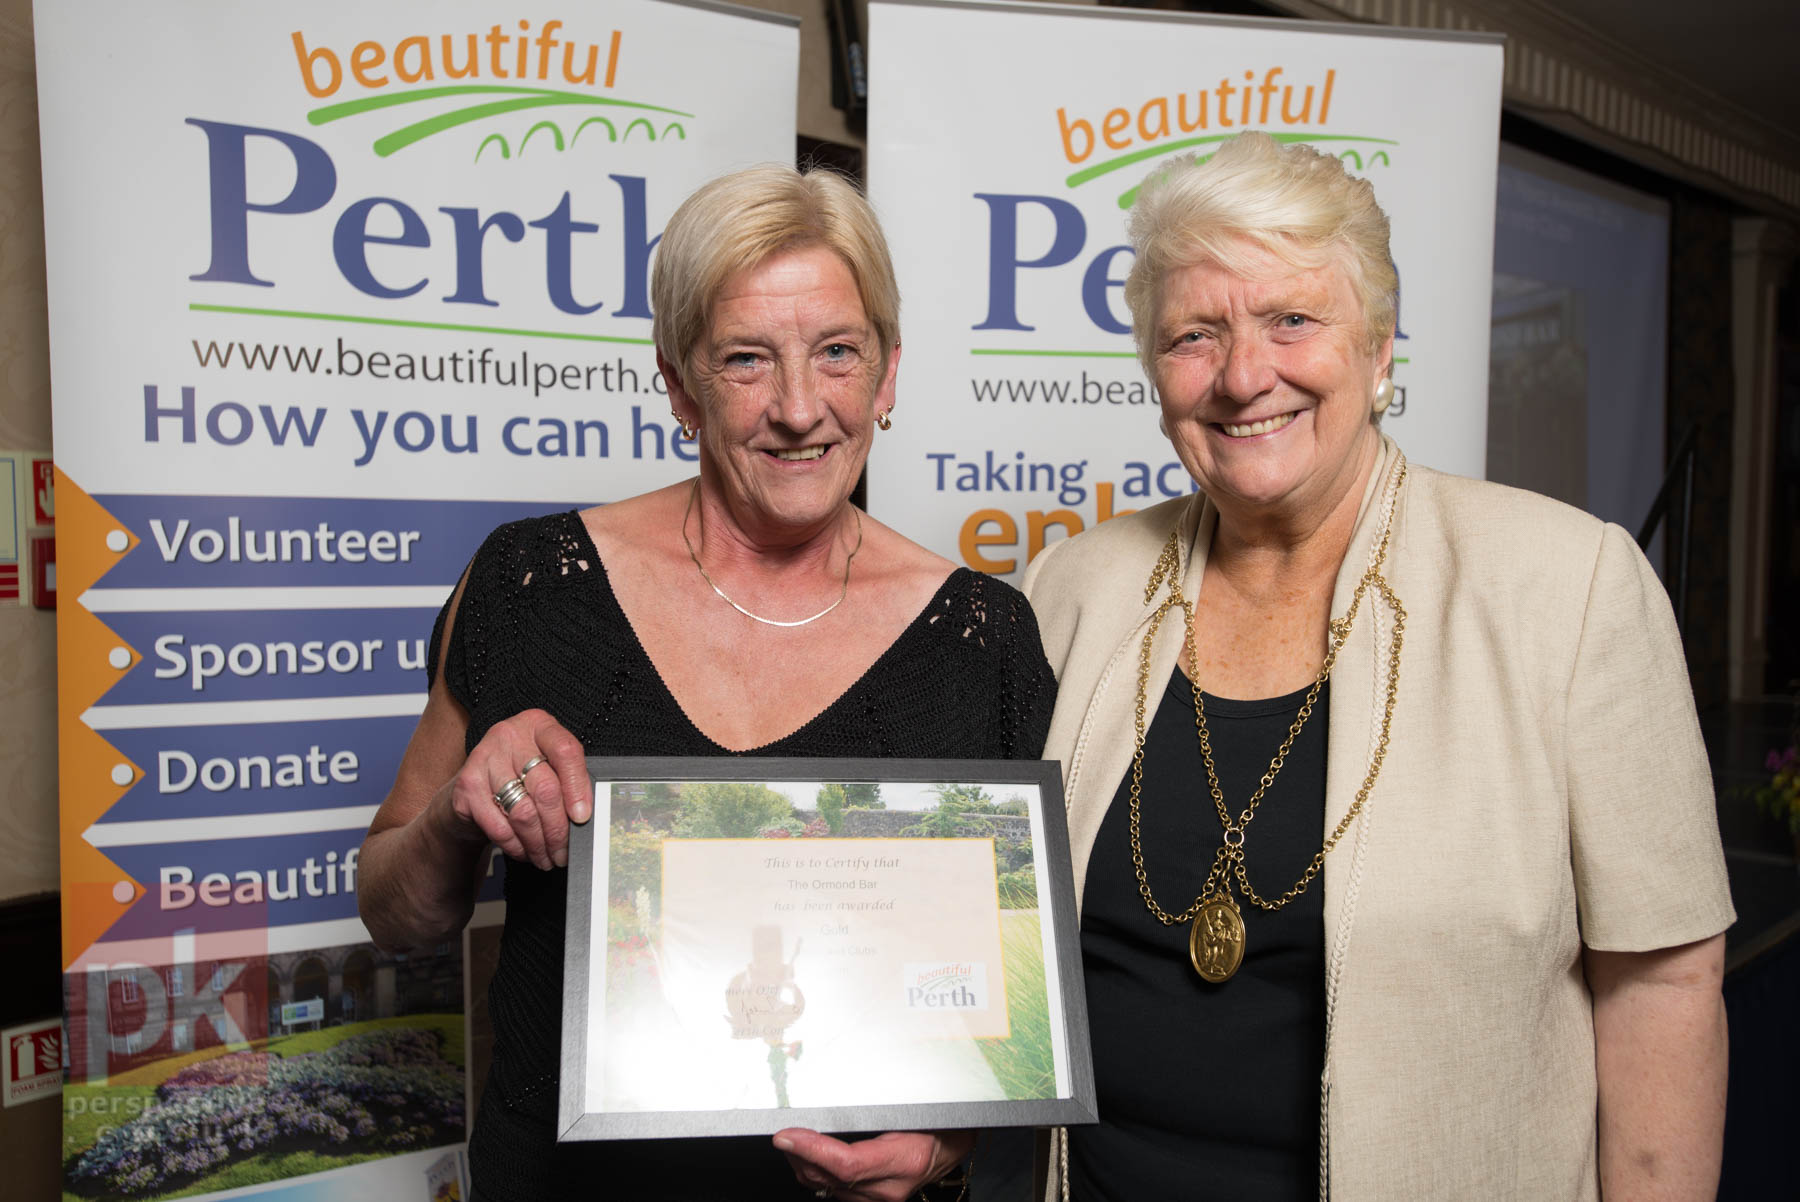 """Covering the """"Beautiful Perth Awards"""" is always good fun. Here's Provost Liz Grant handing out some prizes!"""